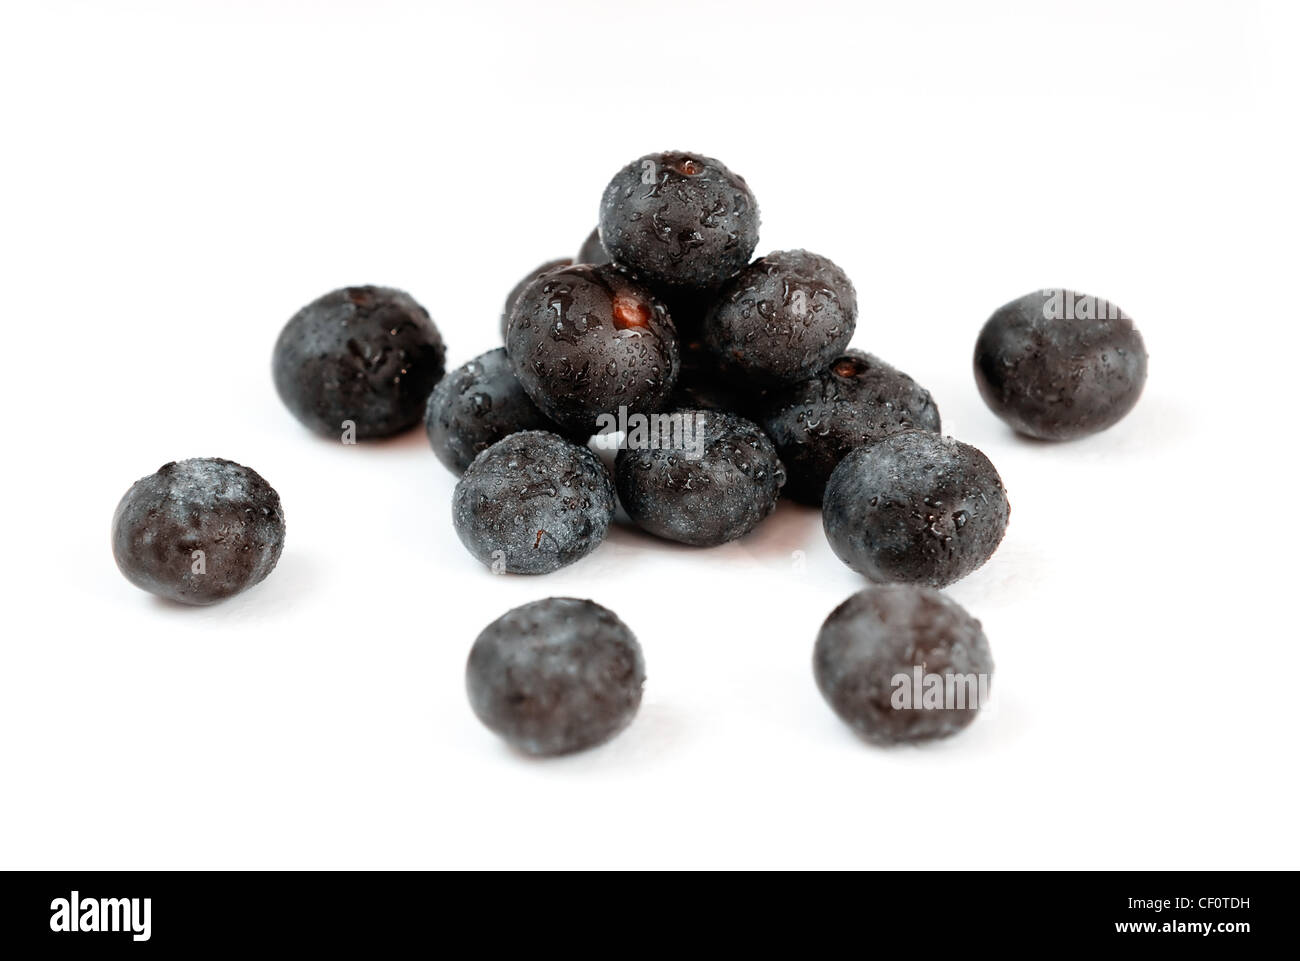 Acai, the small superfruit from the brazilian amazon, very rich in naturally nutrients and antioxidants. - Stock Image